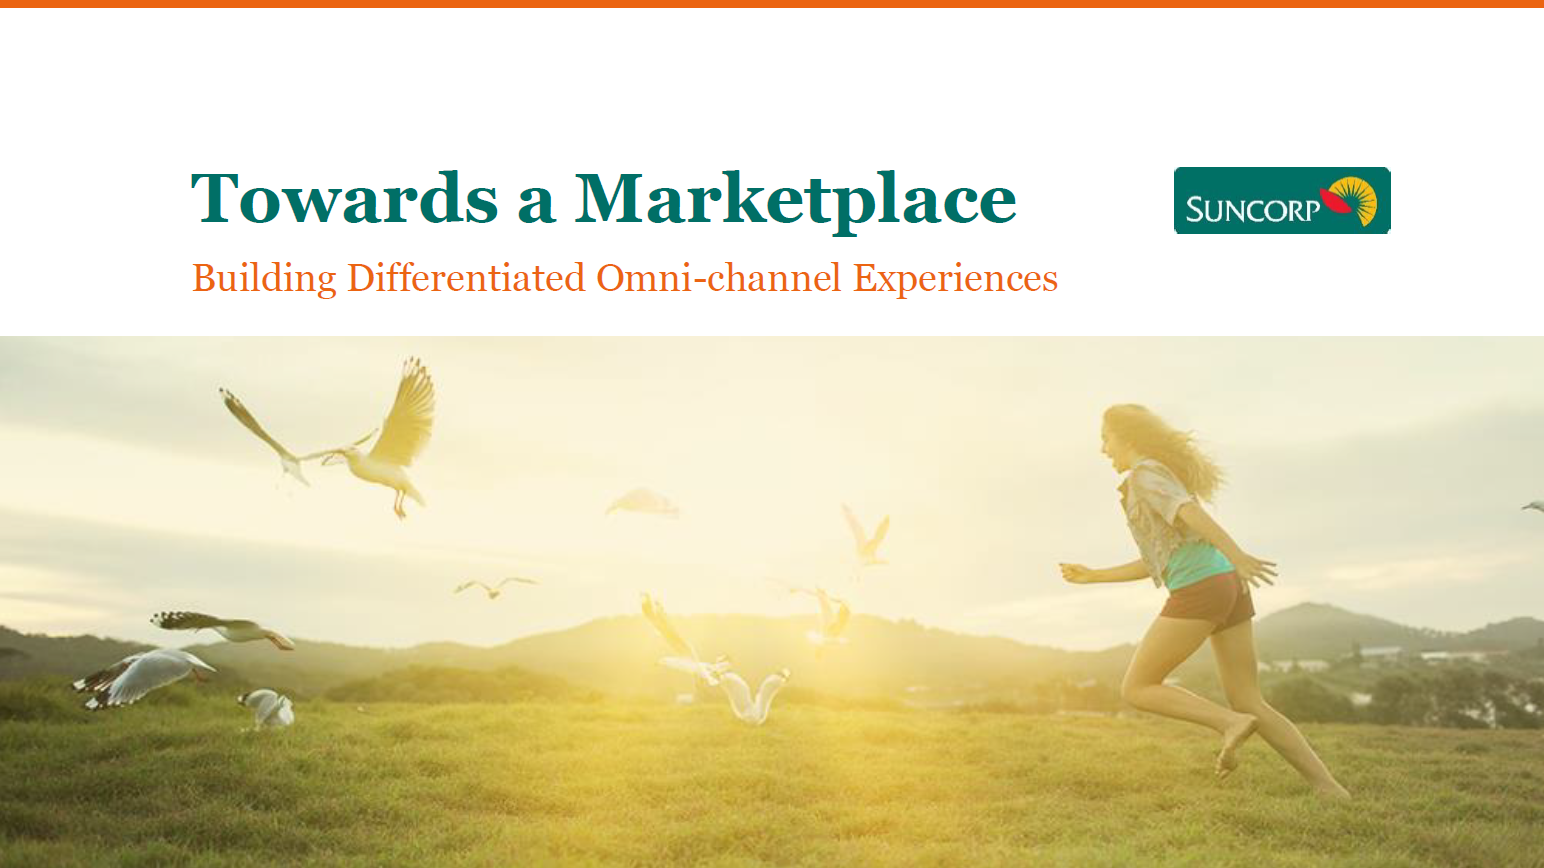 How to Build a Differentiated Omni-Channel Experience for Your Customer